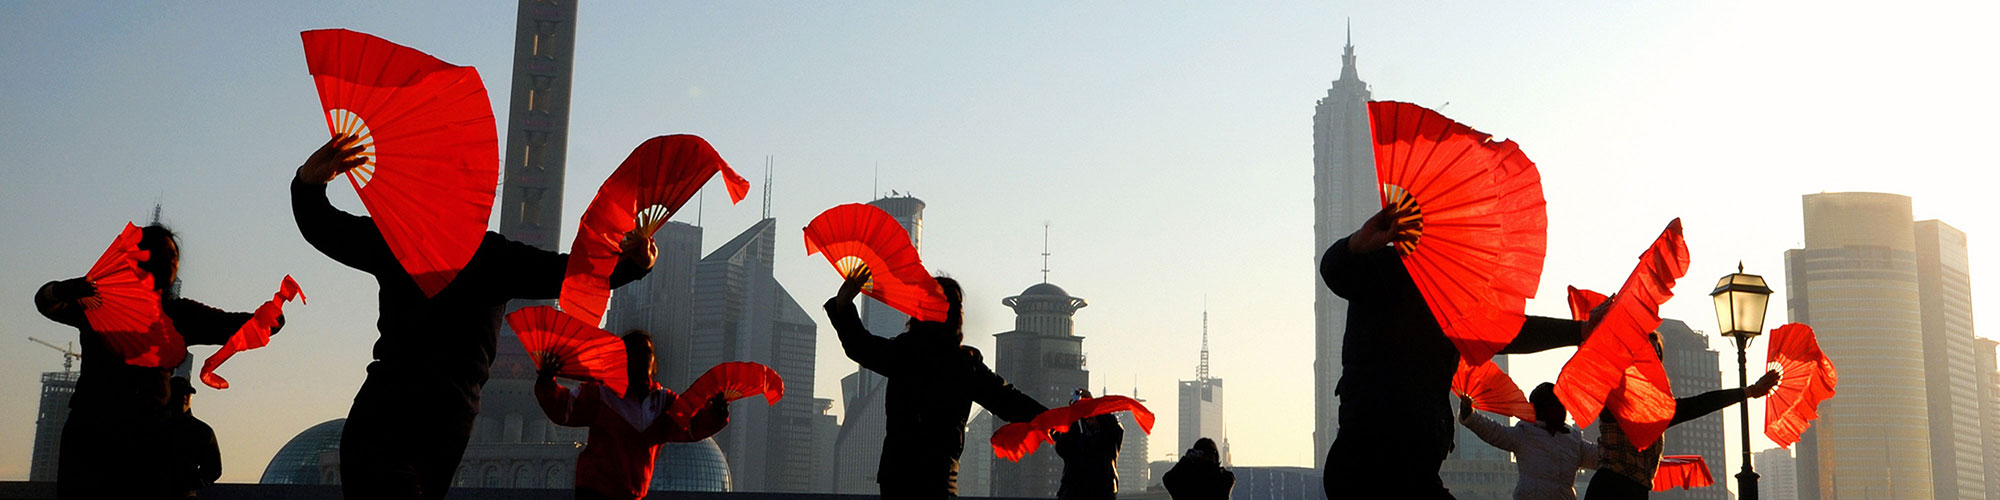 Simplified Chinese Traditional Dance with Red Fans